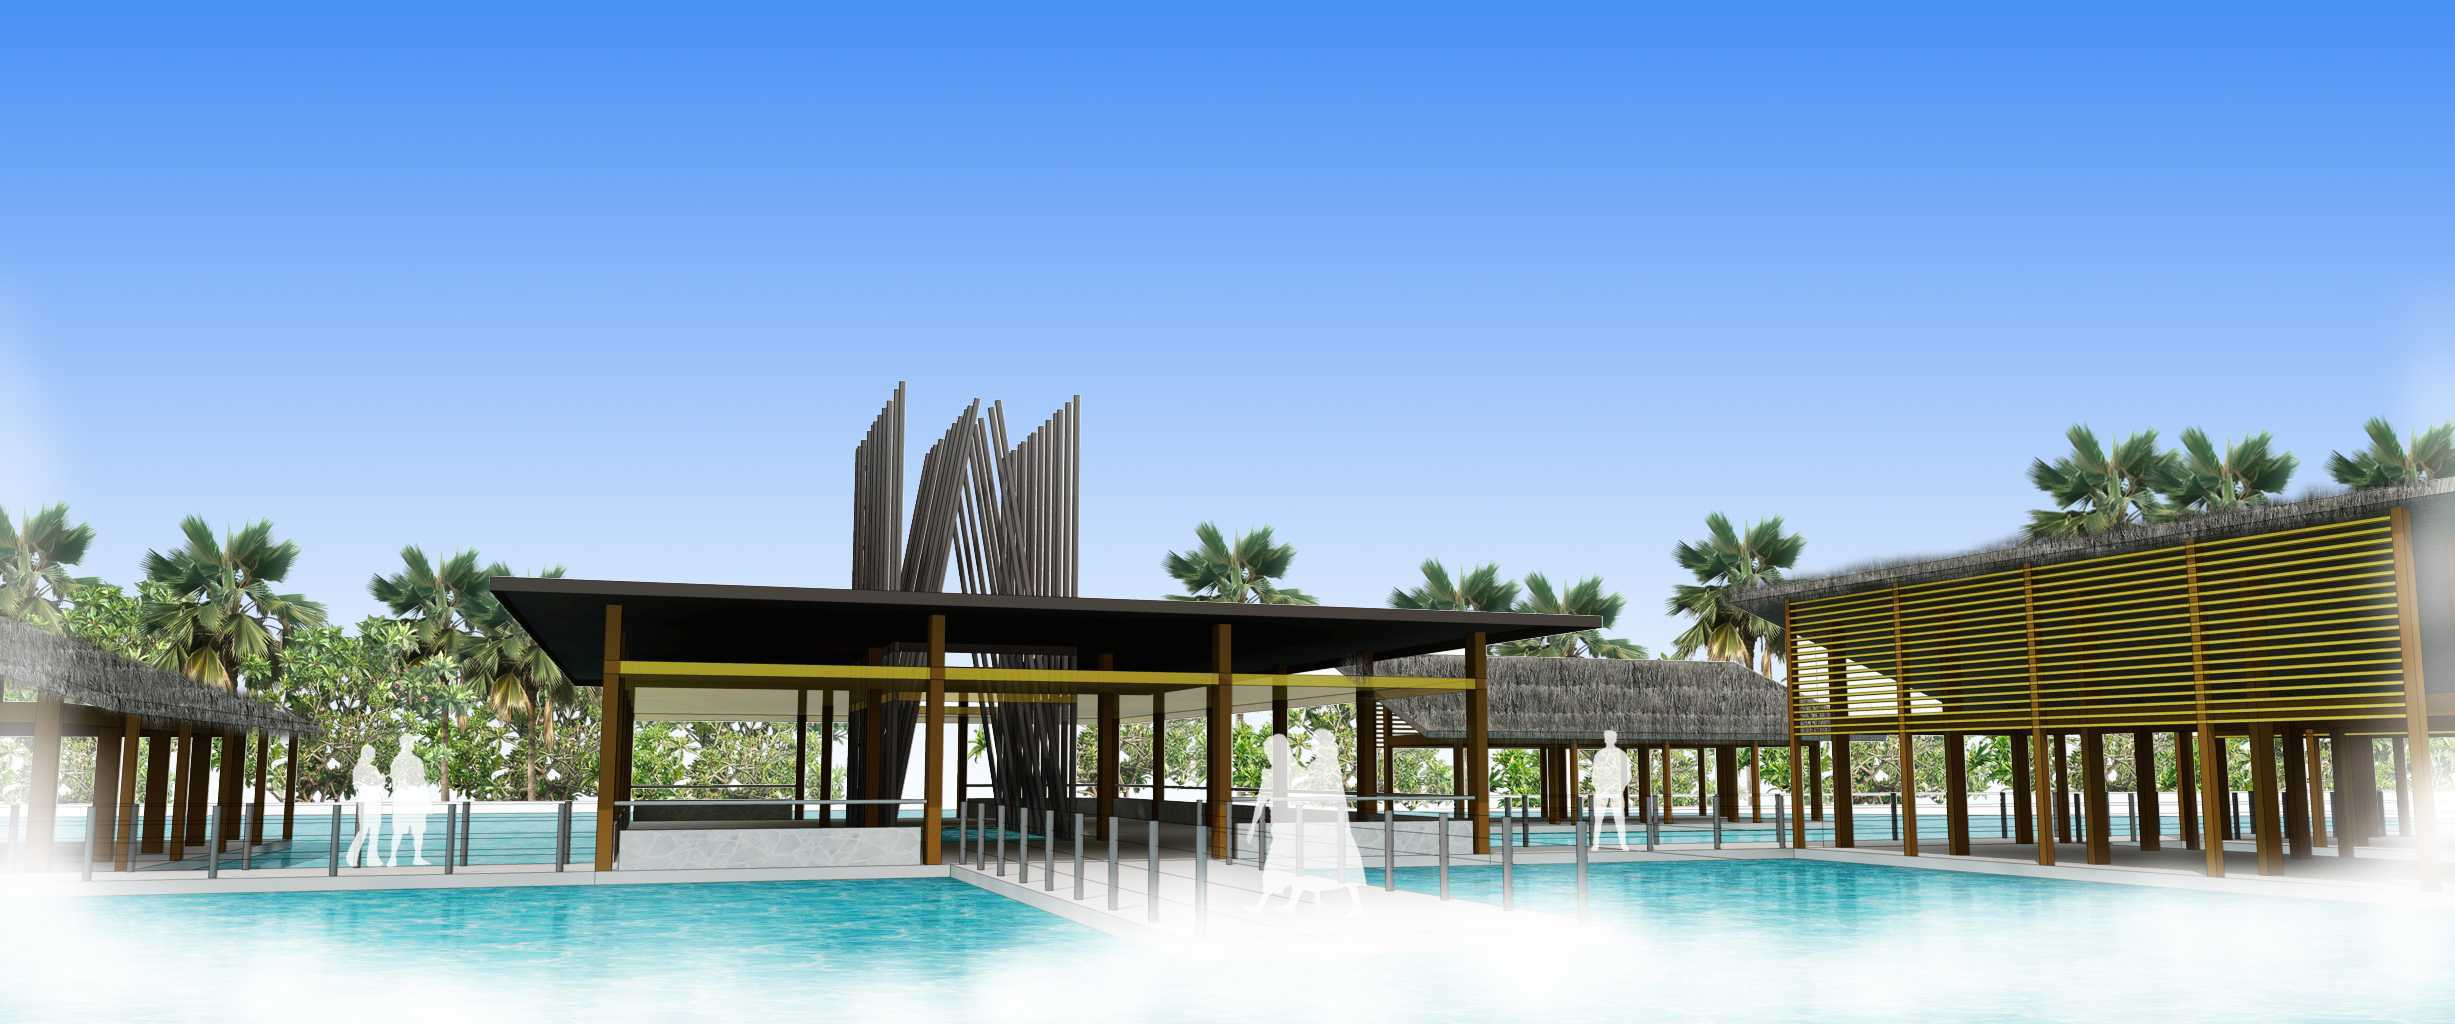 Rerupa Architecture Oefafi Resort & Resto Oefafi, Nusa Tenggara Timur, Indonesia Oefafi, Nusa Tenggara Timur, Indonesia Swimming Pool Area   28978